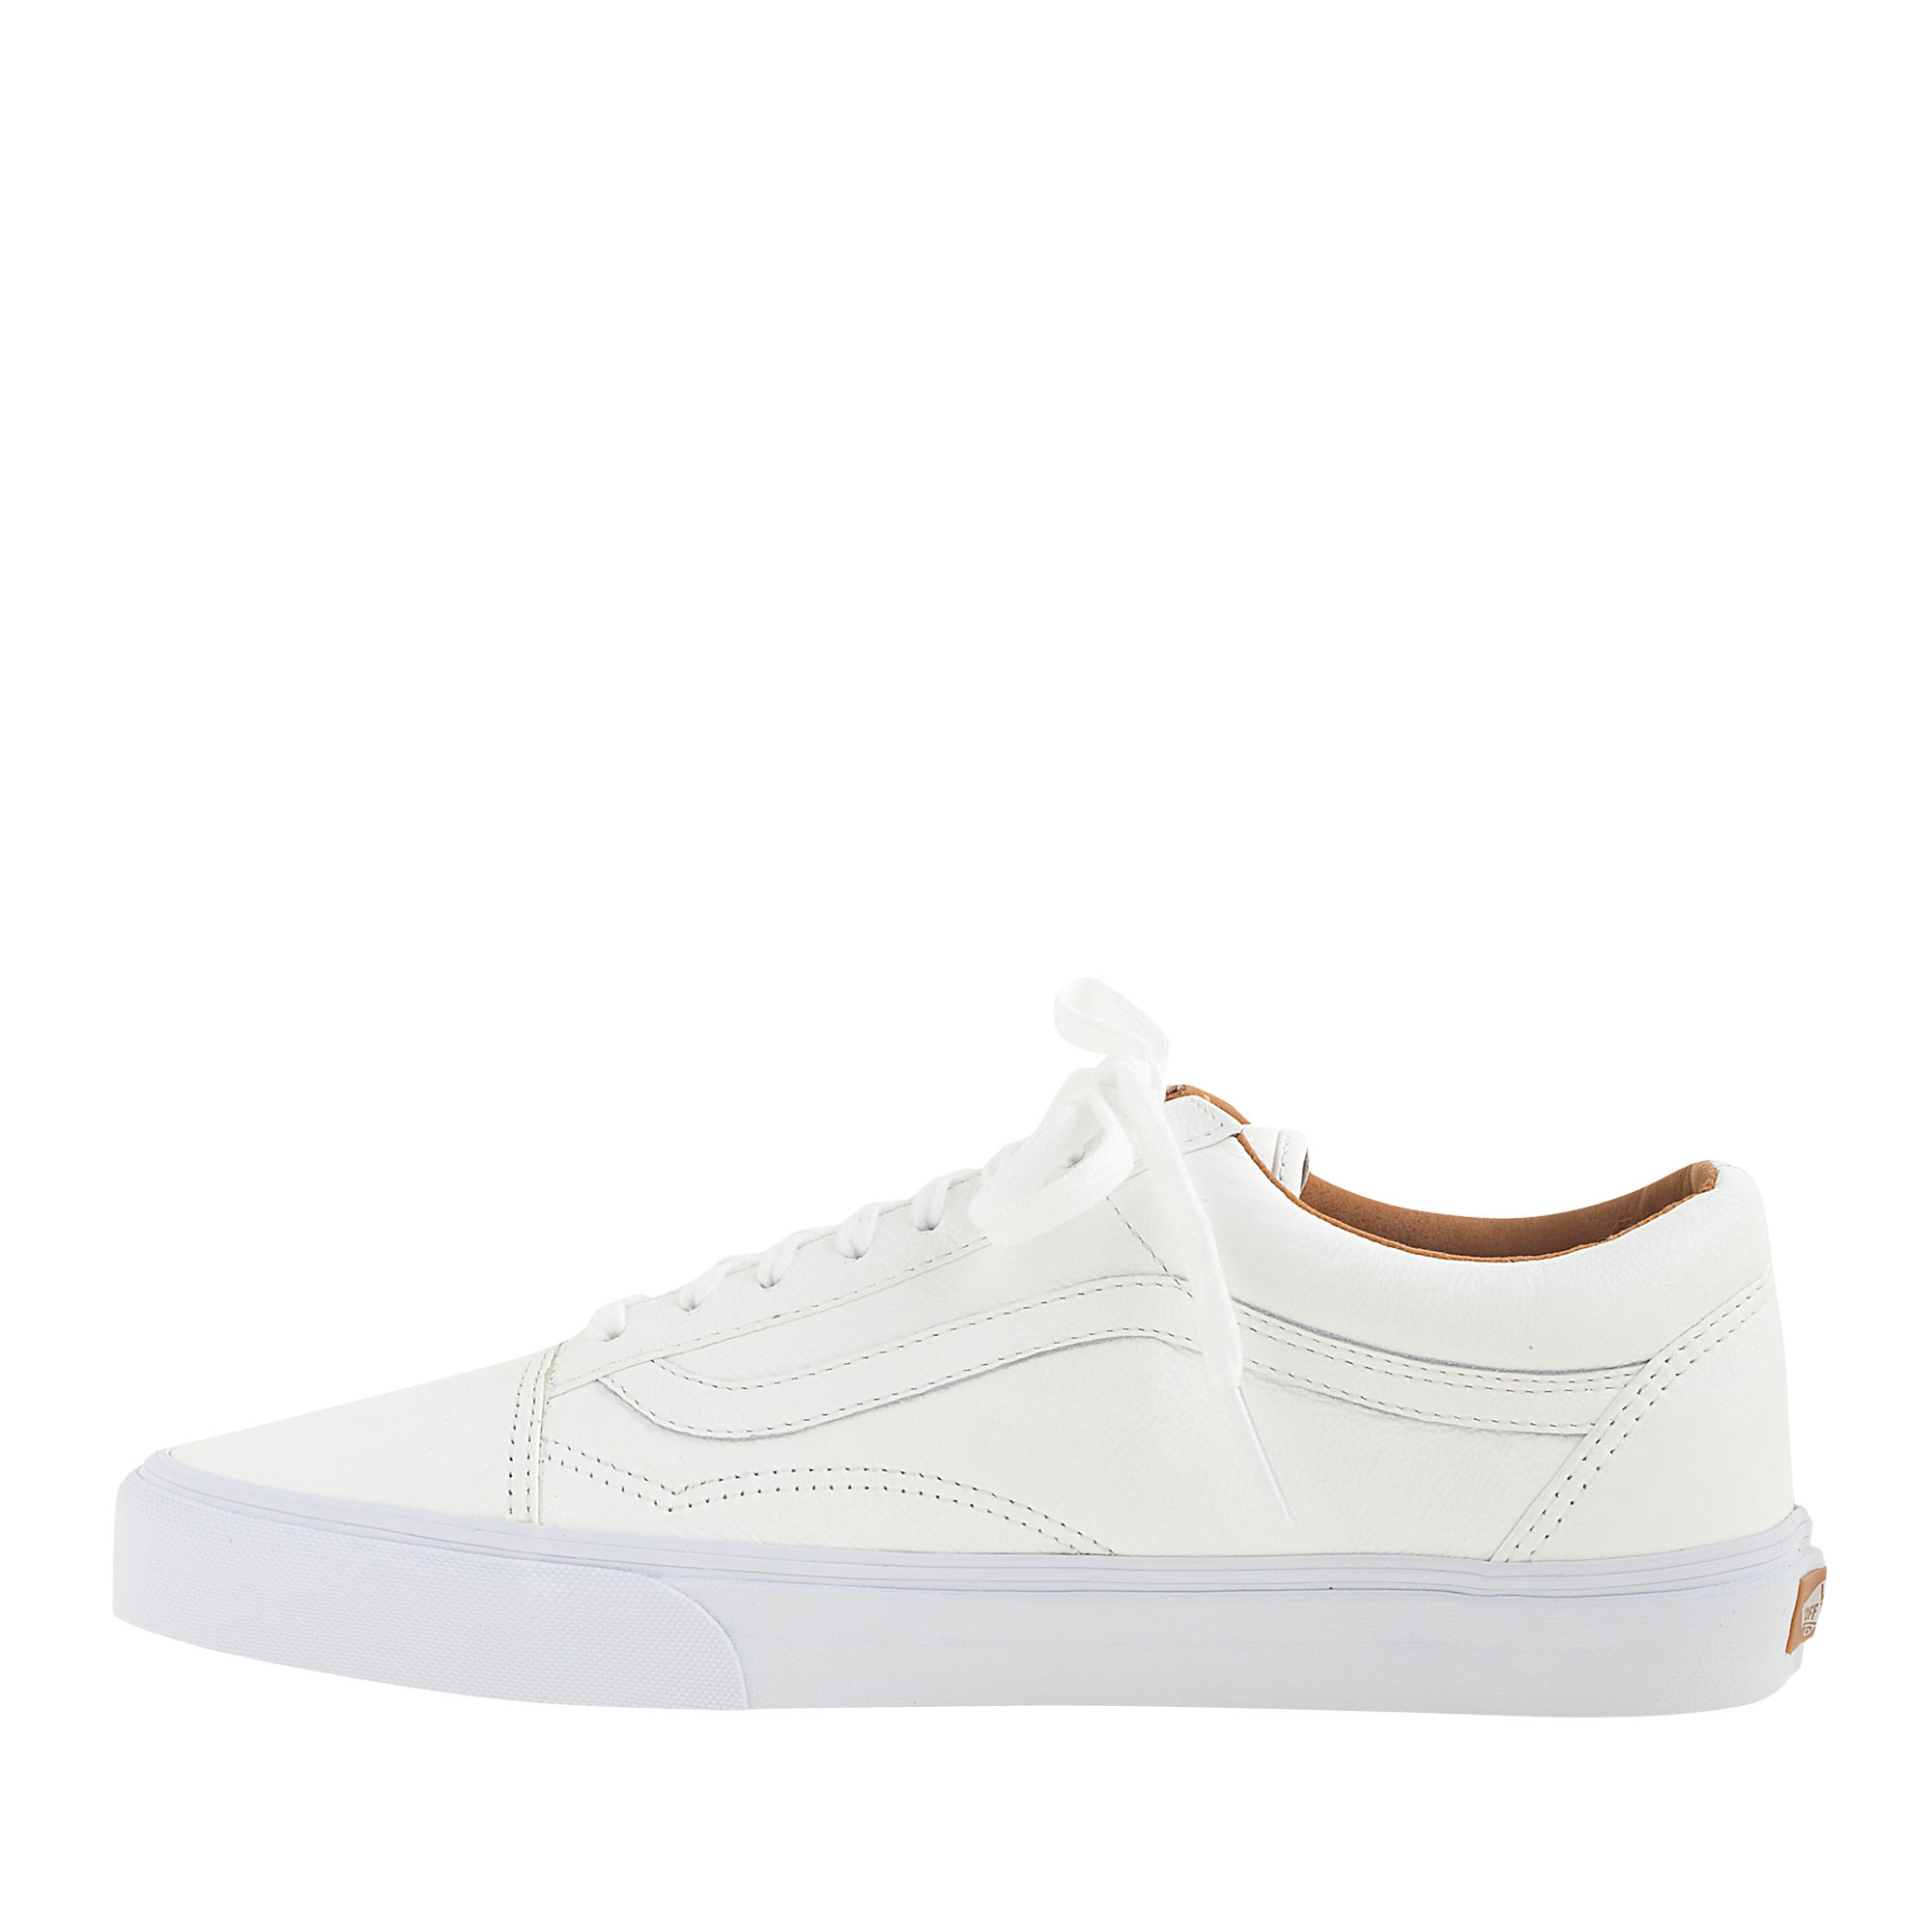 Unisex In White Sneakers Men Lyst crew Leather Skool Old For J Vans® p7ZwRZEq